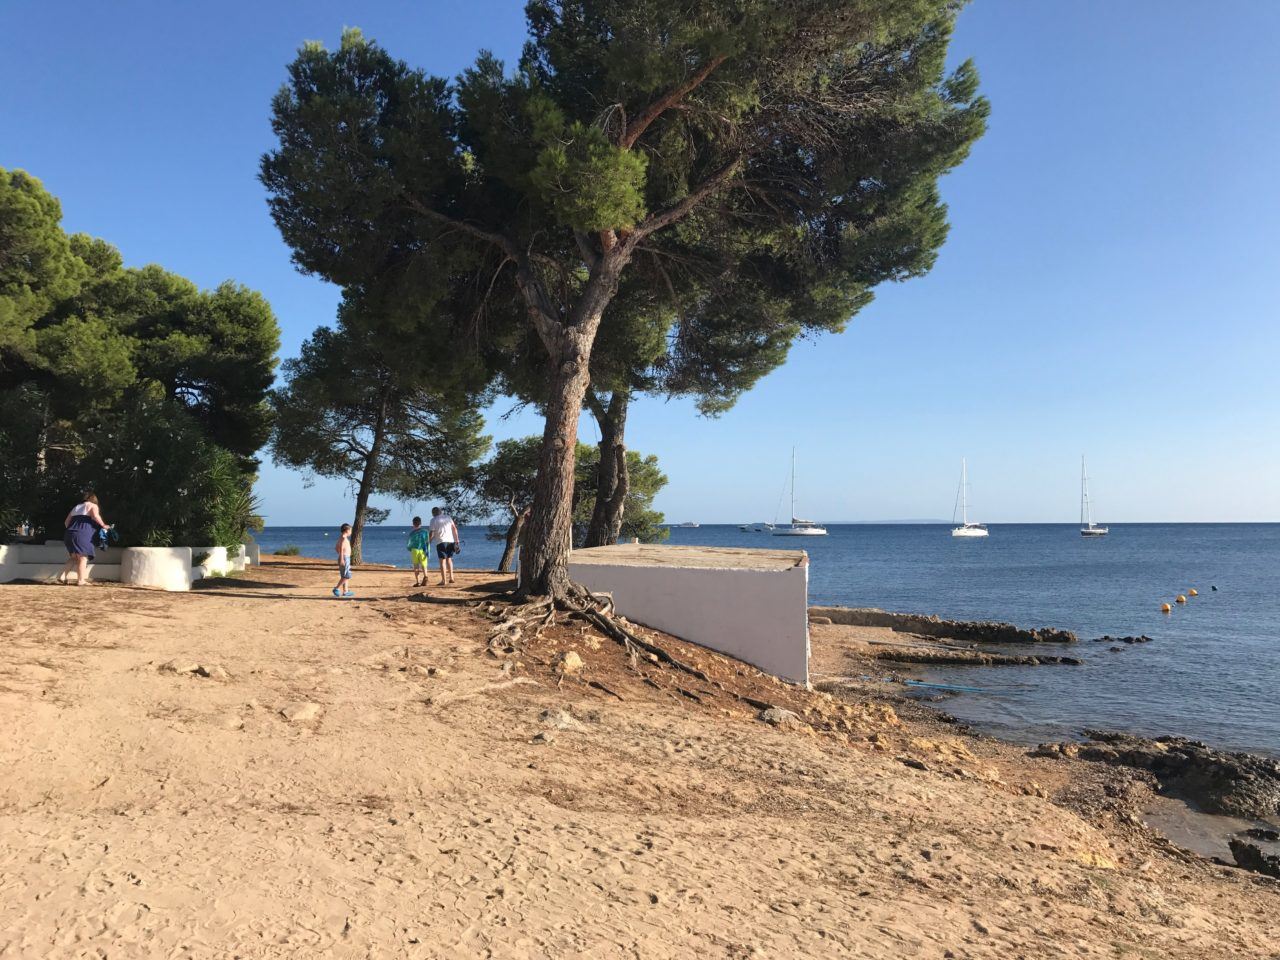 Beach Pathway With Trees And People